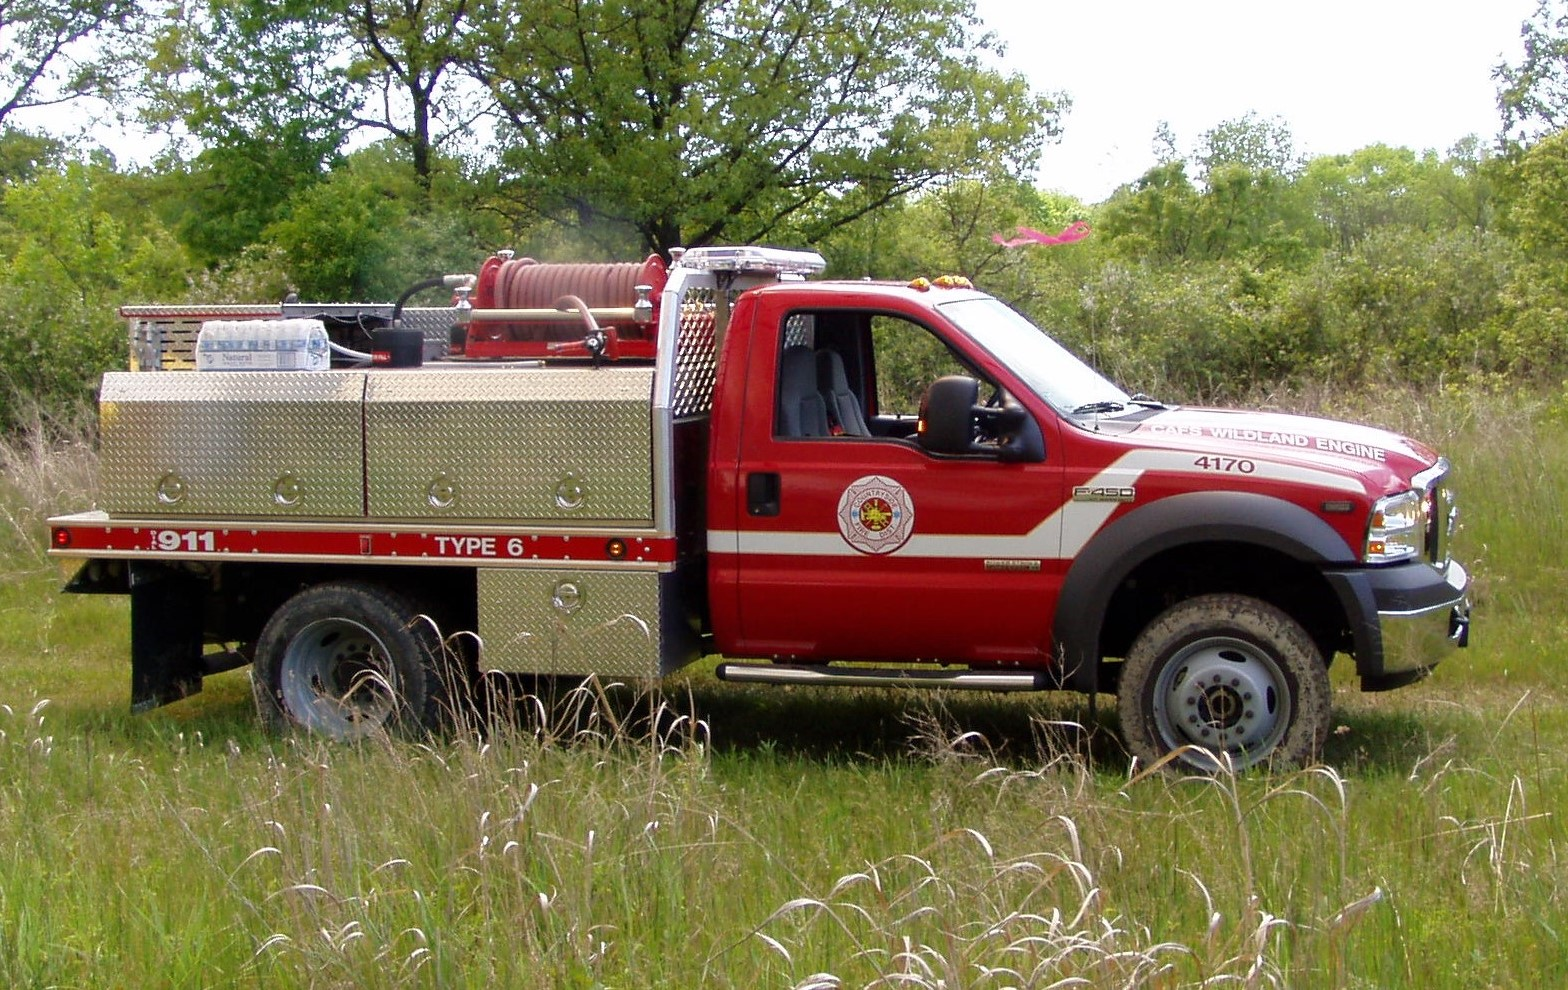 Volunteer Fire Assistance Grant Vehicle